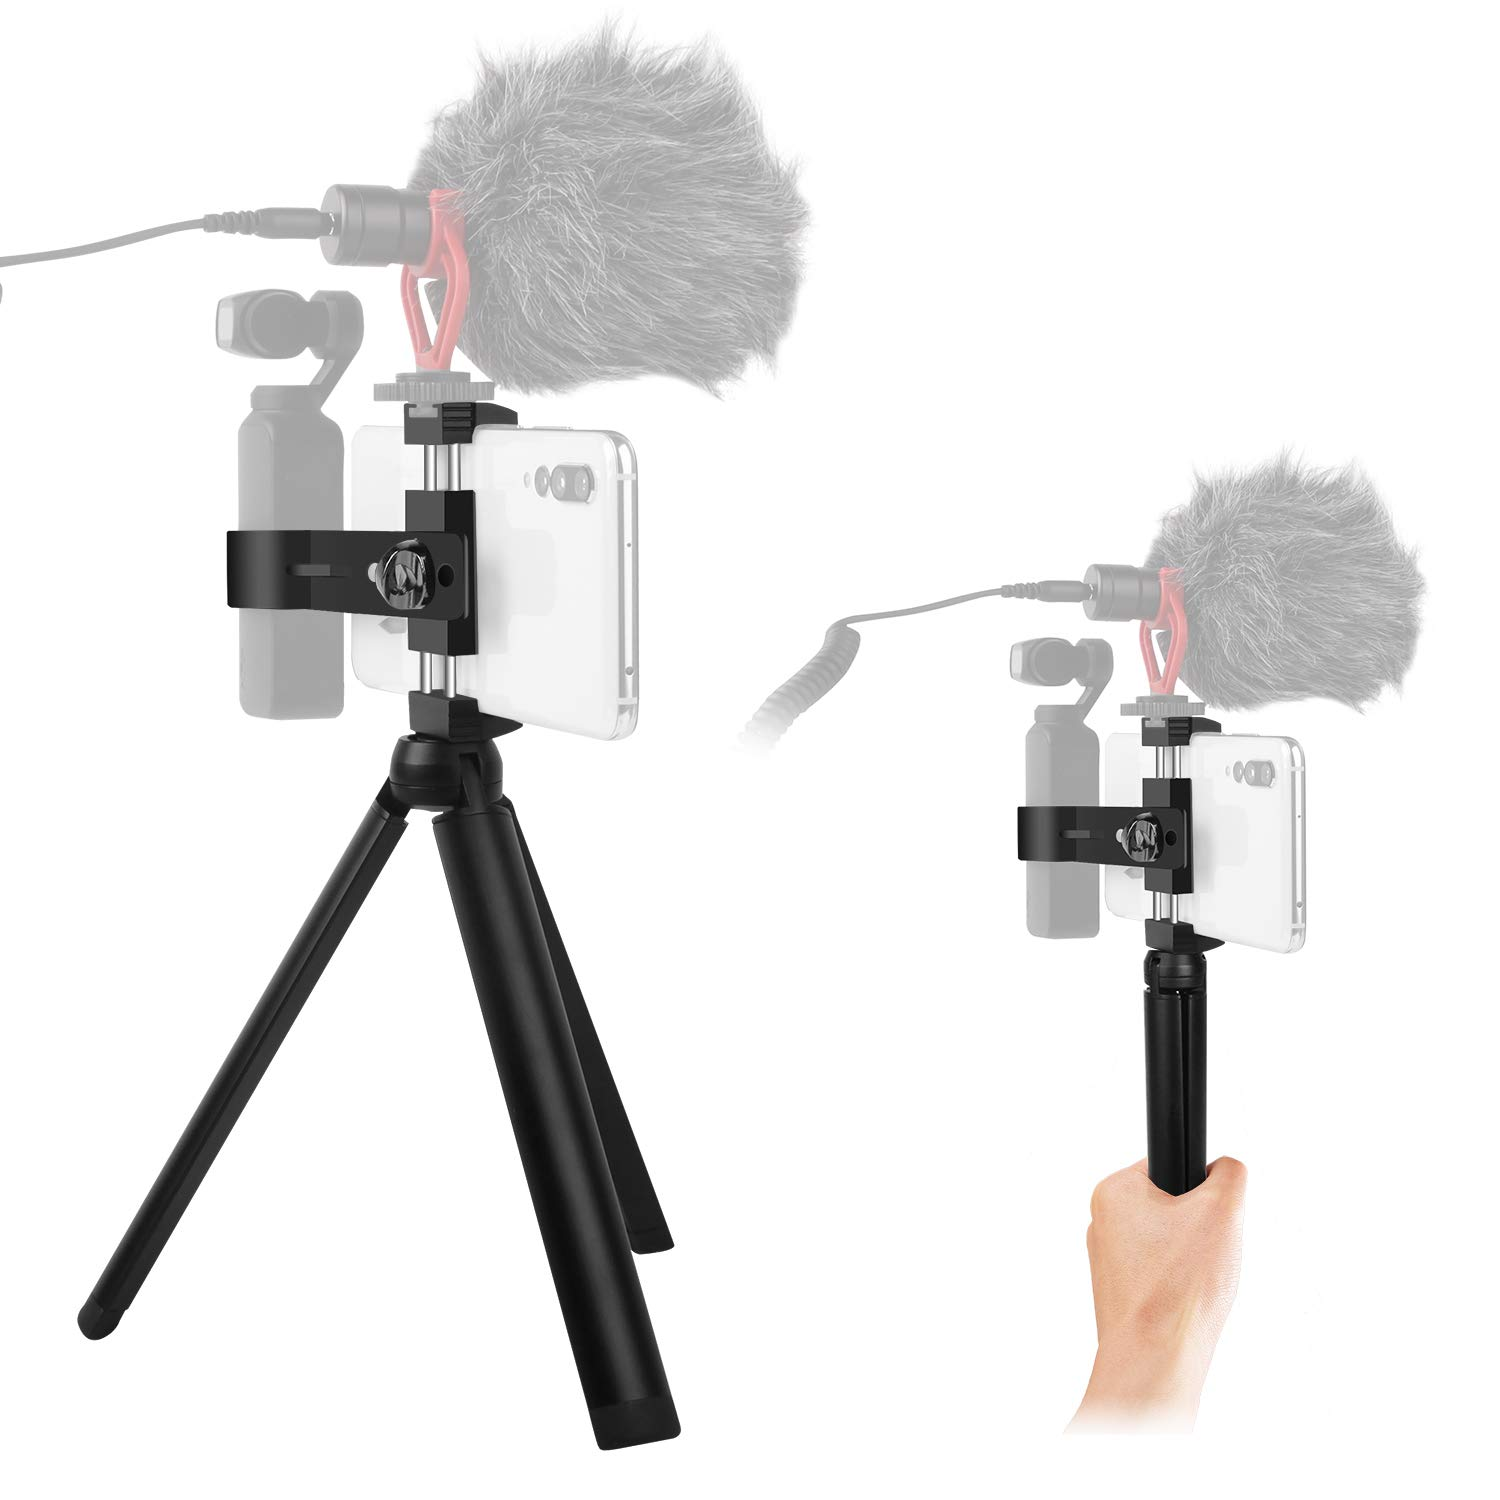 Arzroic Handheld Phone Holder with Tripod Expansion Kit Mount Accessories for DJI Osmo Pocket by Arzroic